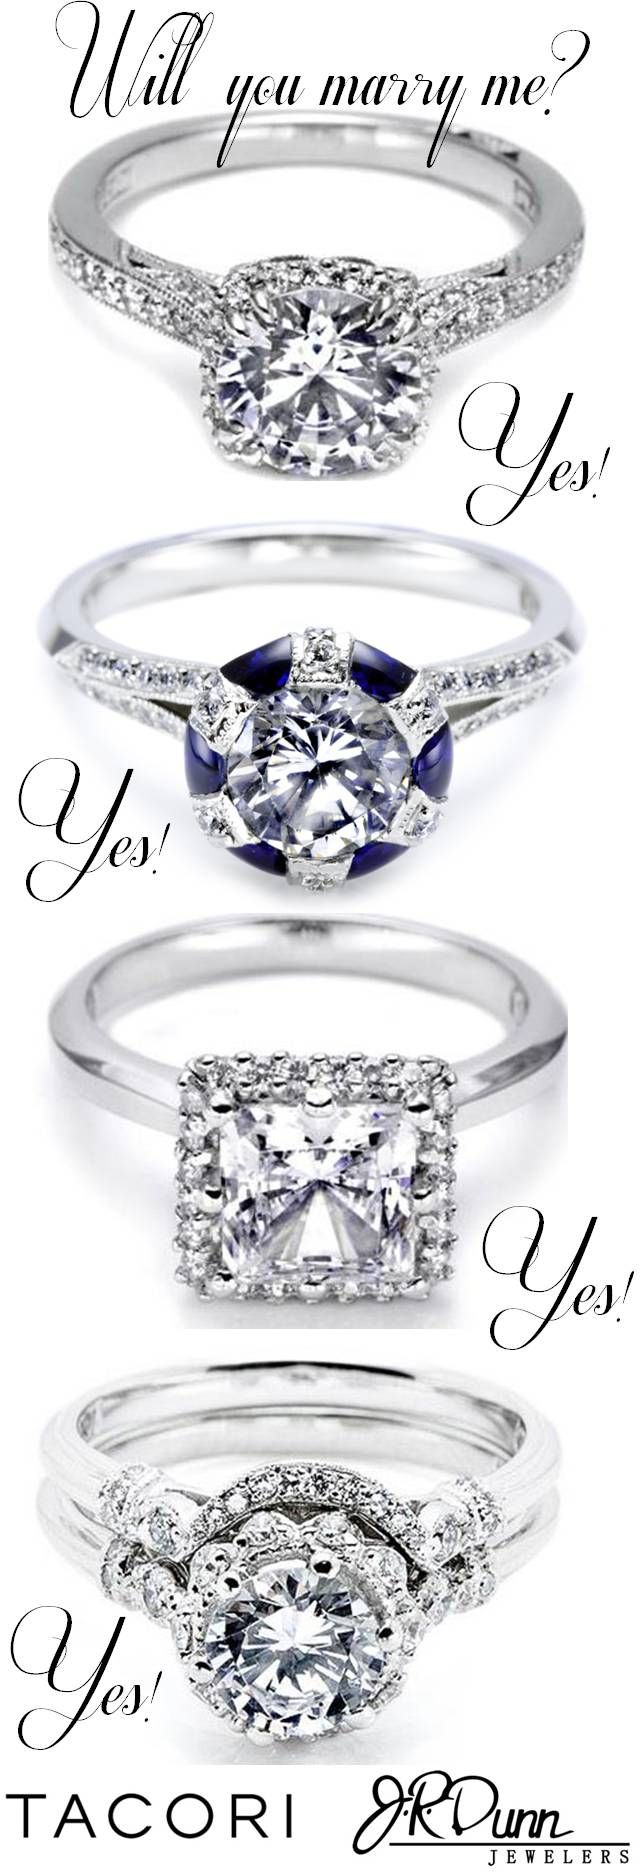 Tacori Rings at J. R. Dunn Jewelers! So much sparkle! Which one is catching your eye?